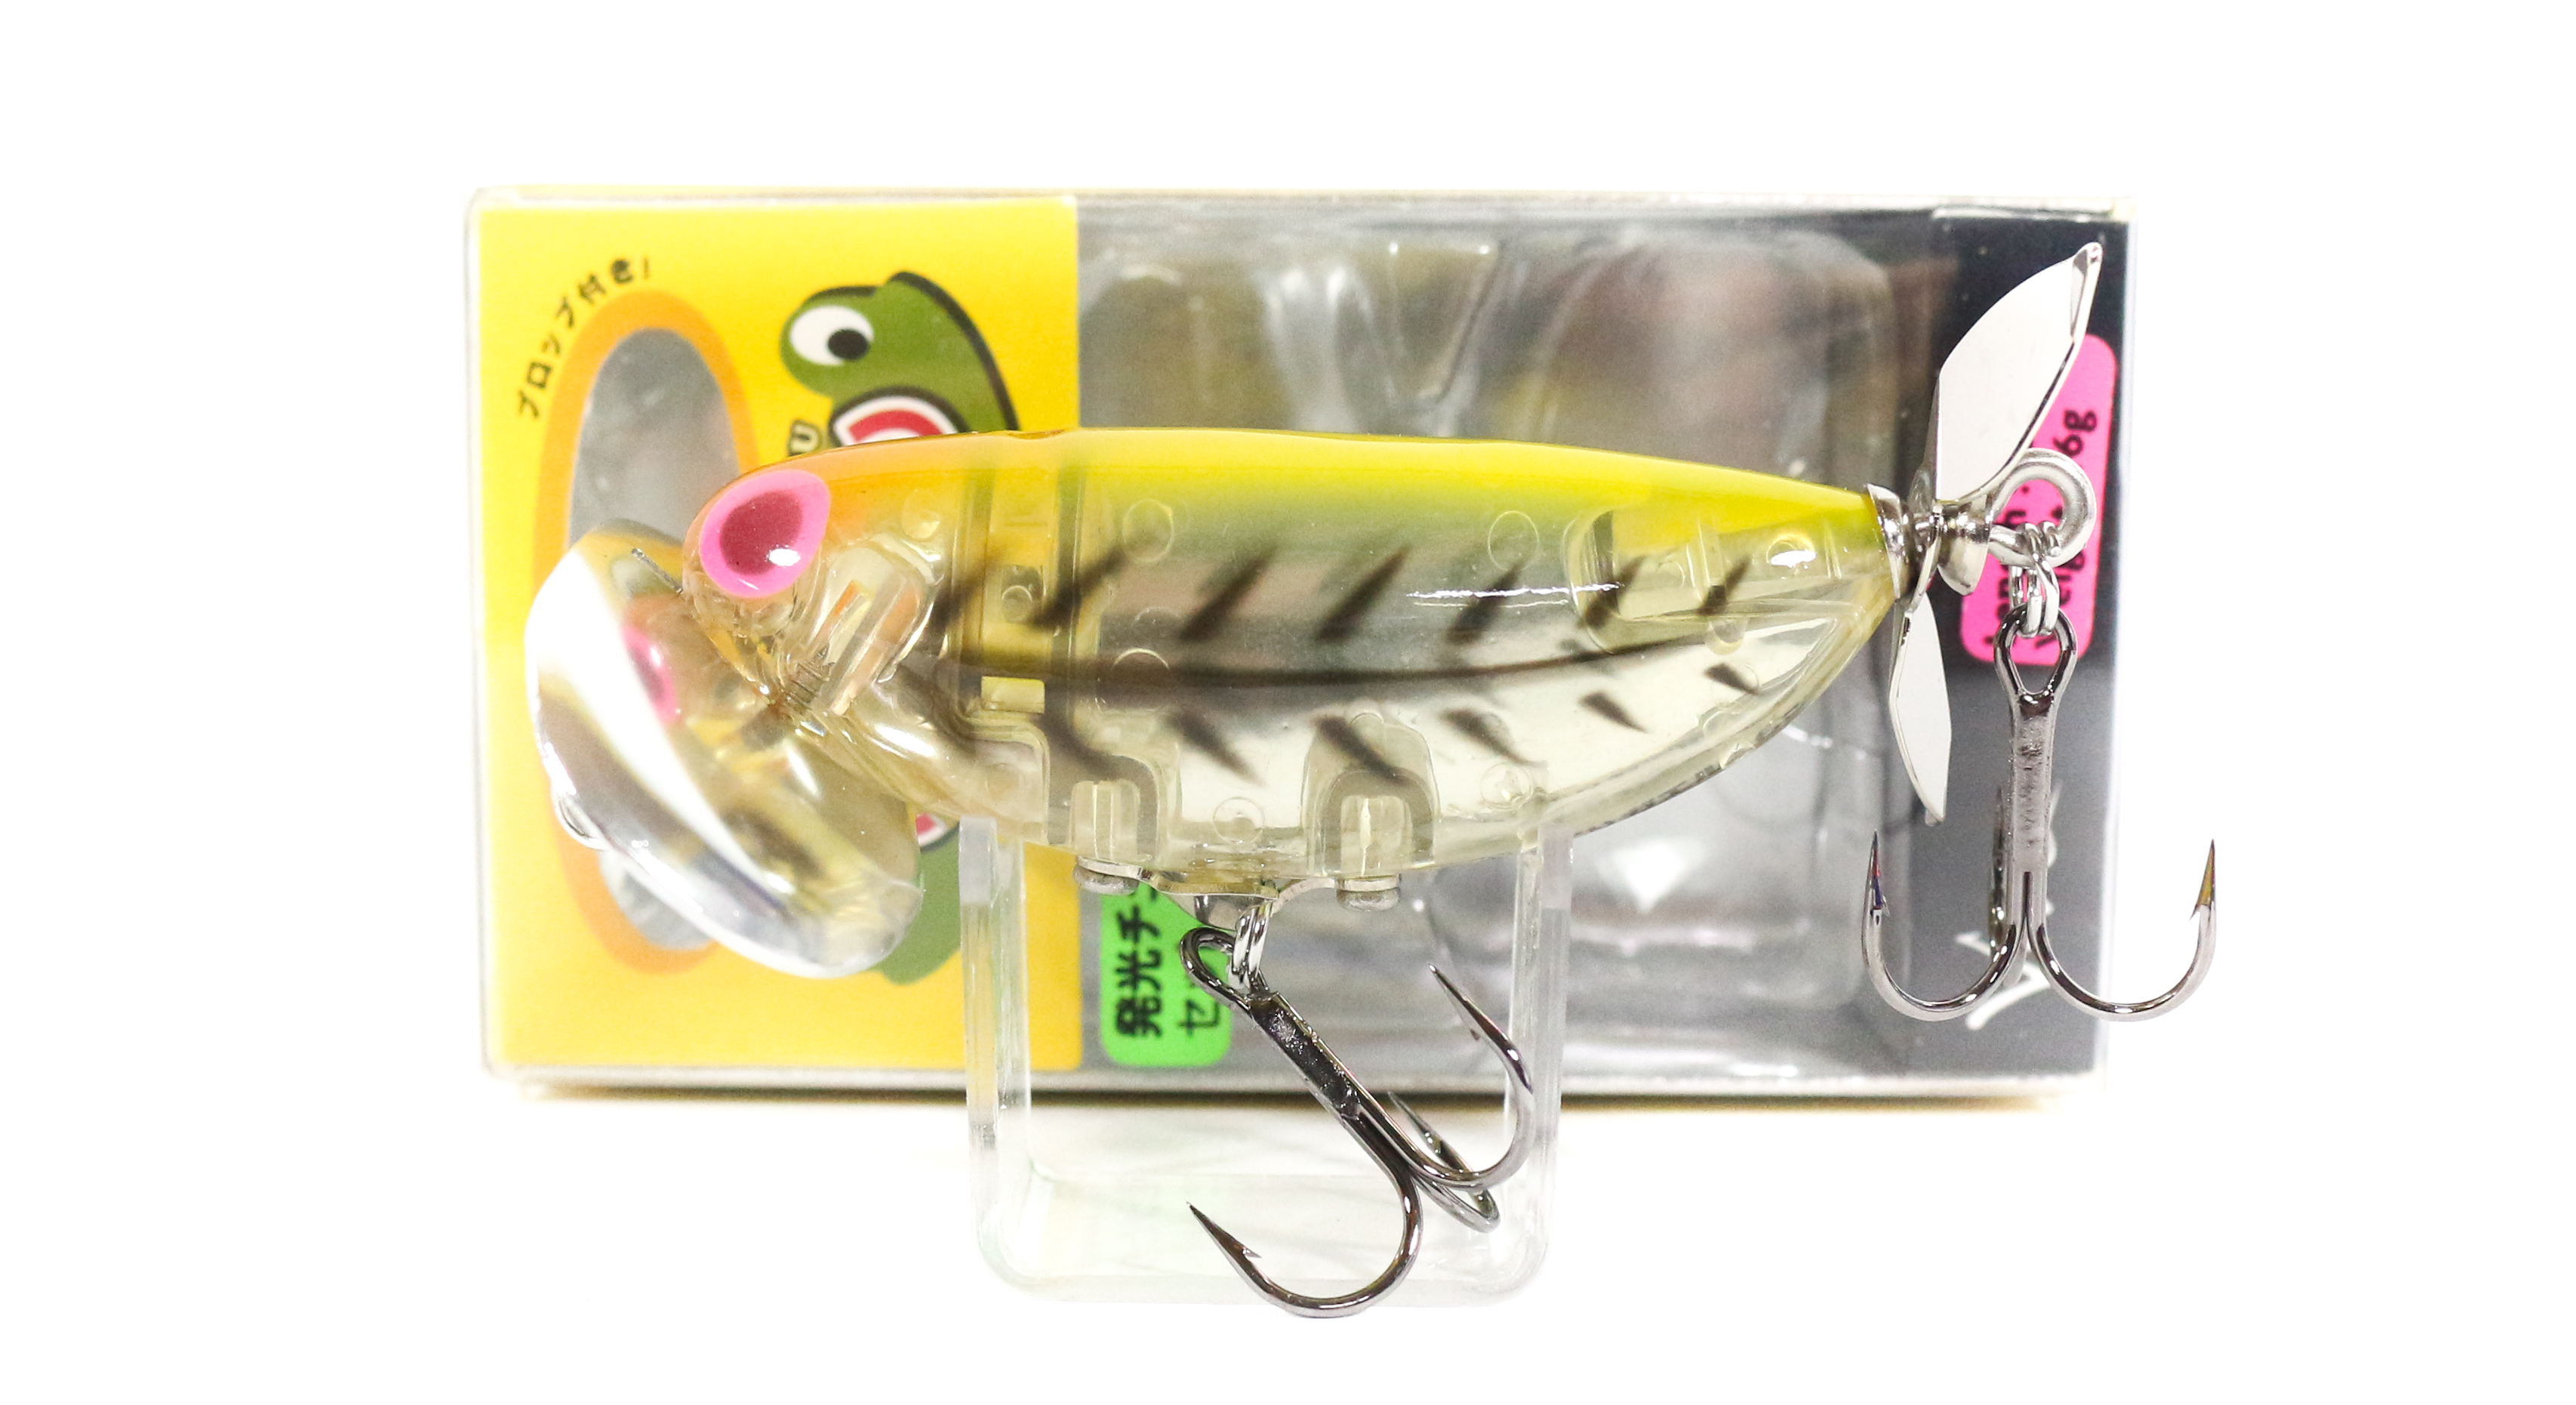 Viva Denguri Gaeru Jitter Walking Prop Floating Lure 39 (5546)